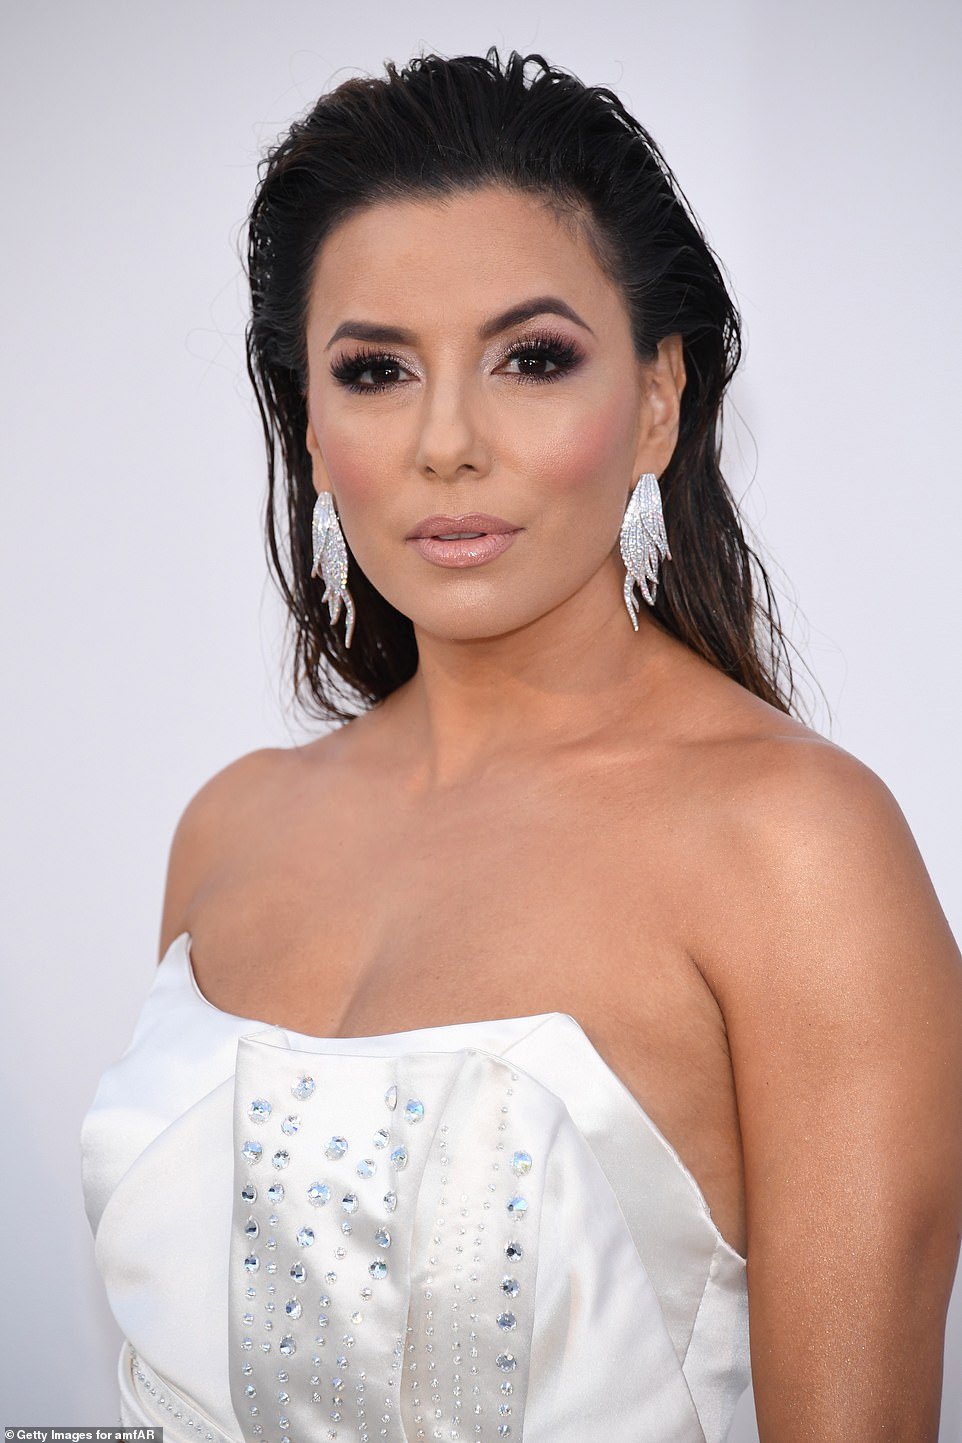 Stunning: Eva looked utterly gorgeous with a contoured make-up base, complete with nude lipstick, smokey eyeshadow and topped off with glittering drop earrings